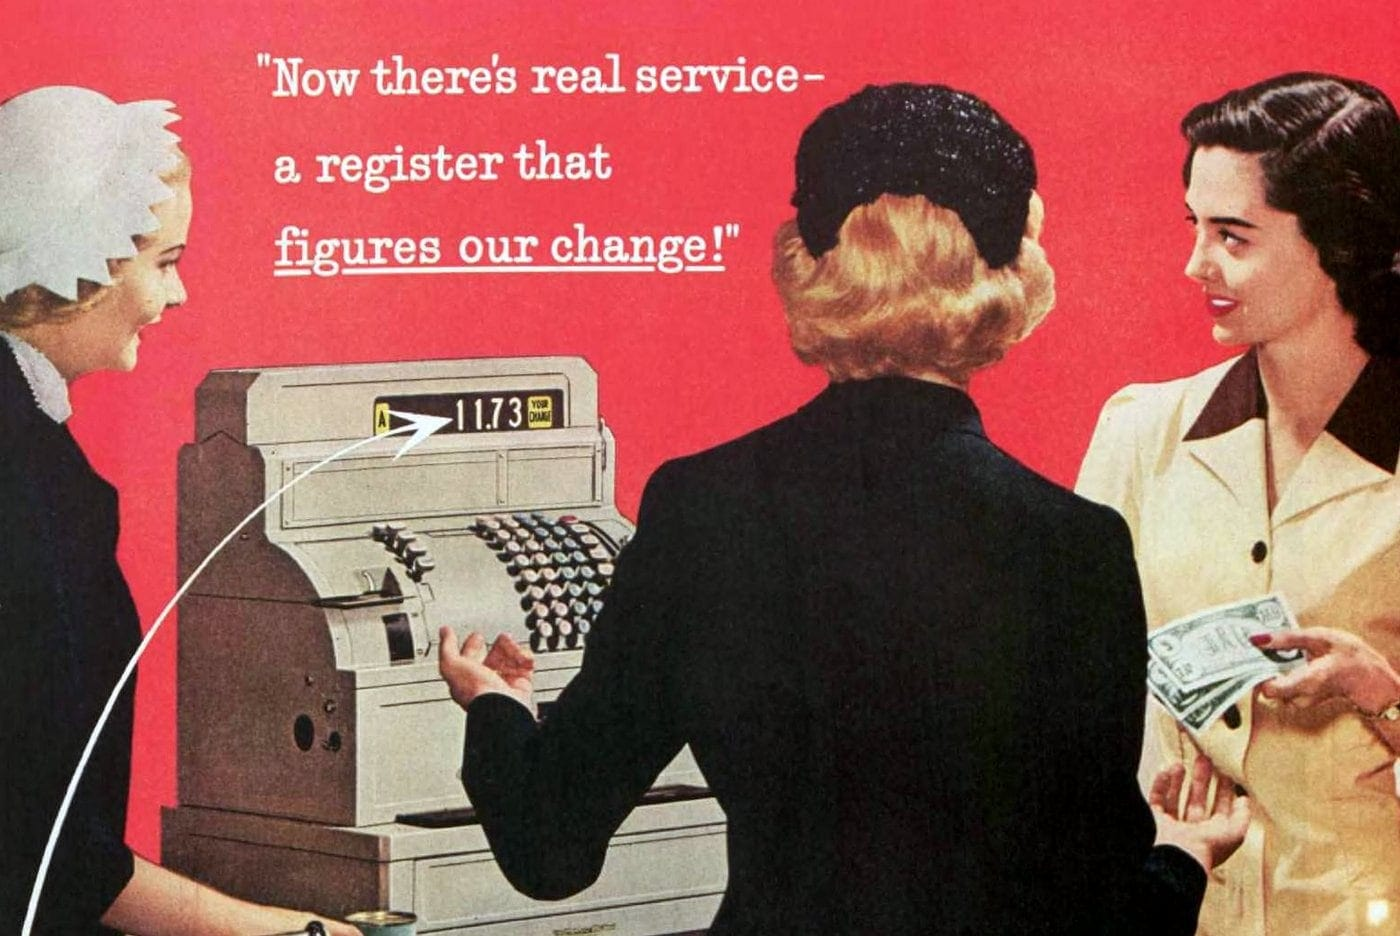 Retro cash registers amazed people by figuring out exact change